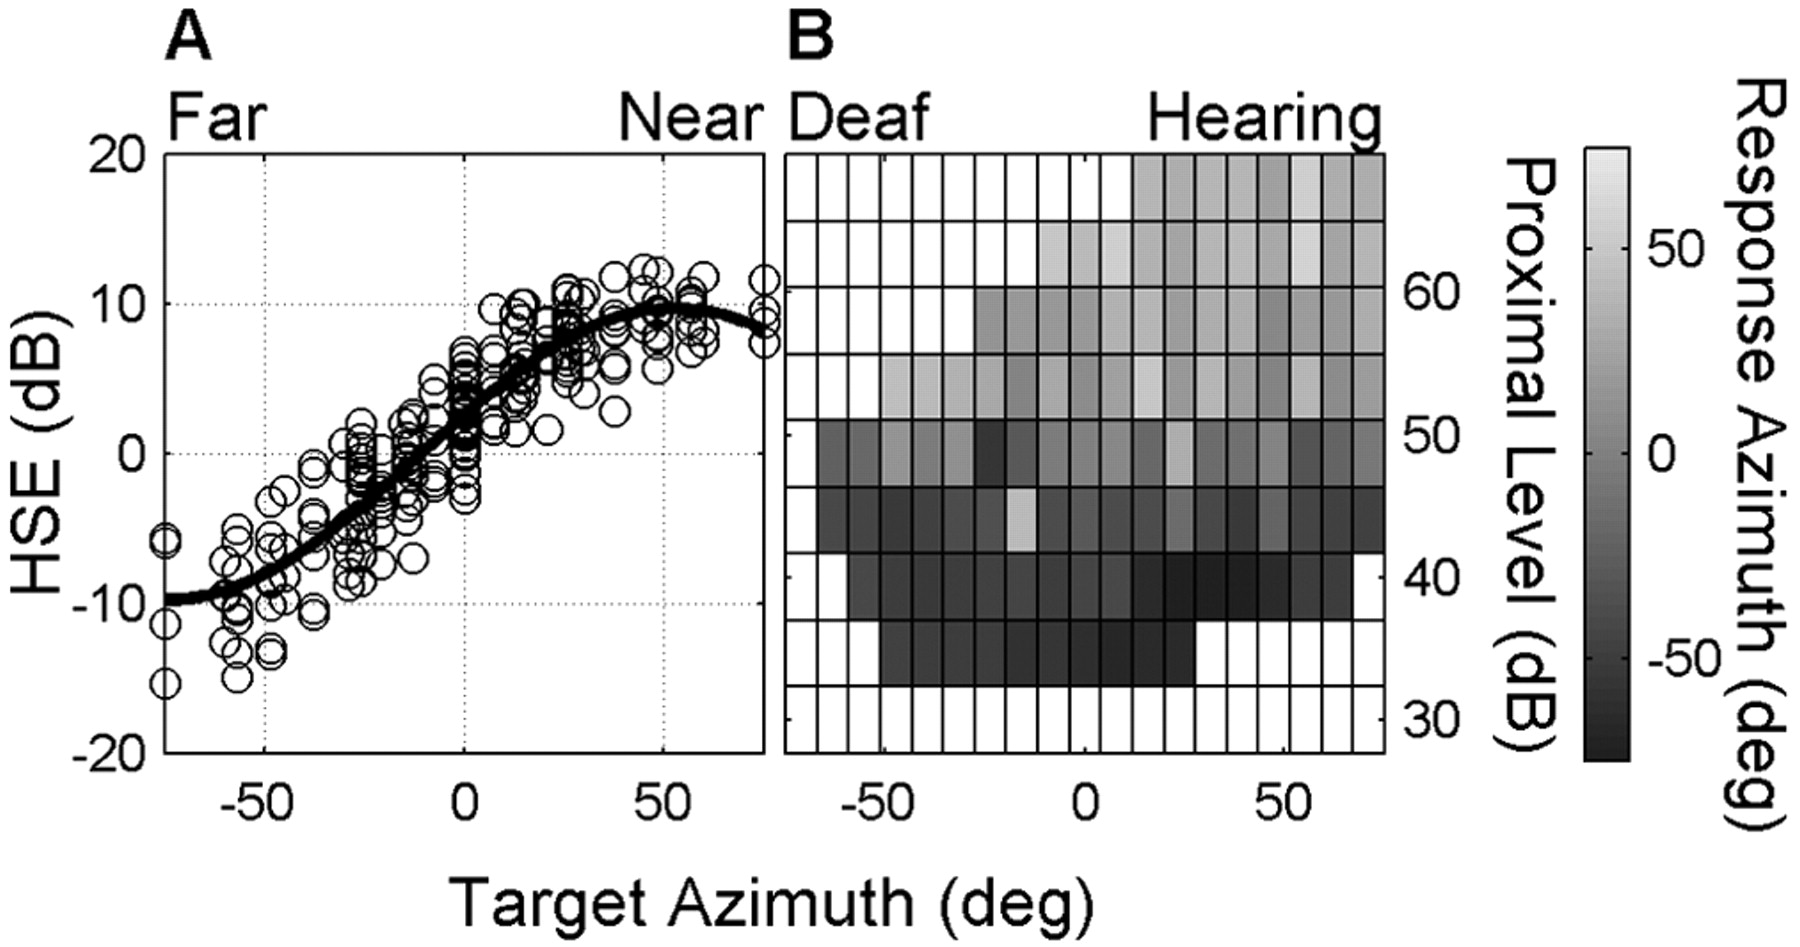 Contribution of Head Shadow and Pinna Cues to Chronic Monaural Sound